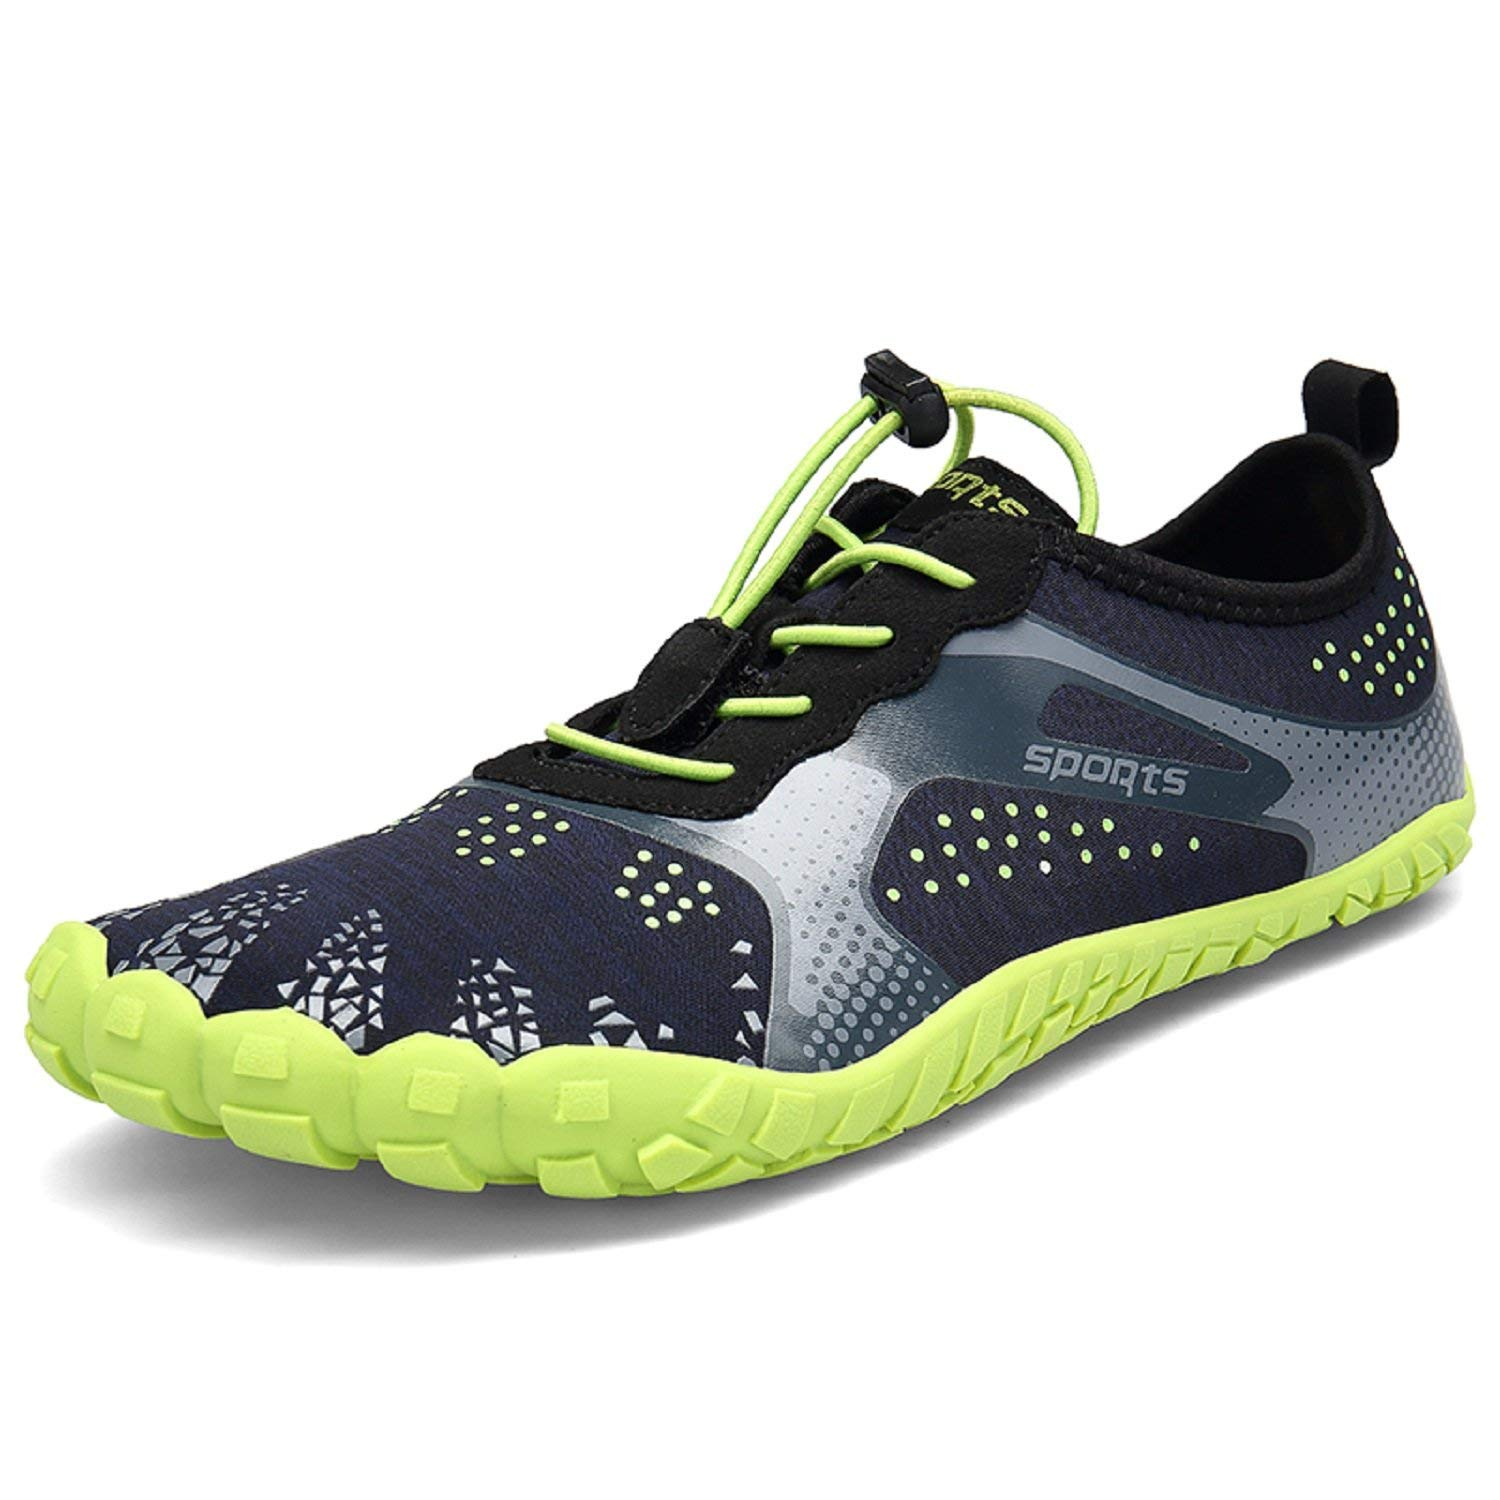 TQGOLD Mens Womens Barefoot Running Shoes Quick-Dry Water Shoes Athletic Outdoor Hiking Walking Beach